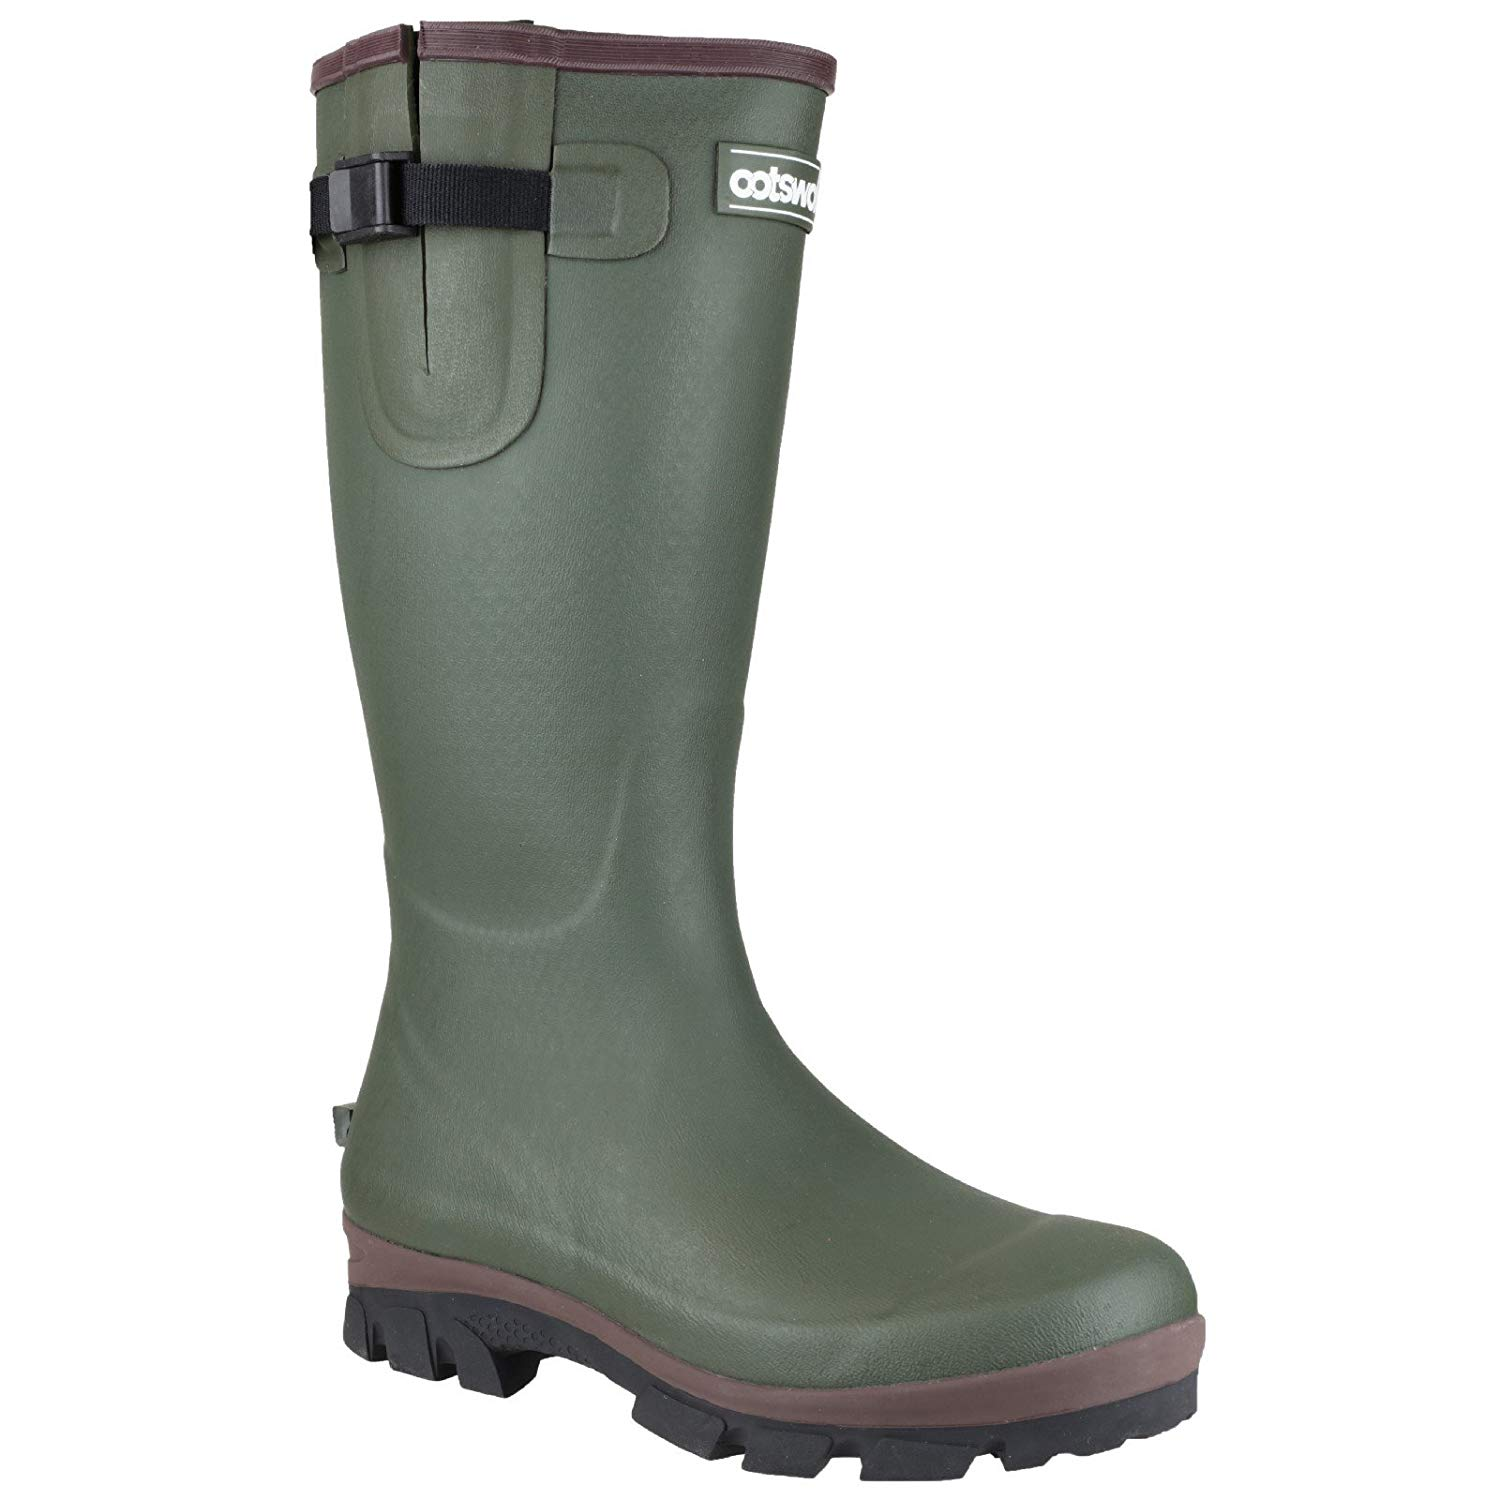 mens wellington boots amazon.com | cotswold grange neoprene mens rubber wellington boots | rain YRLGGRA